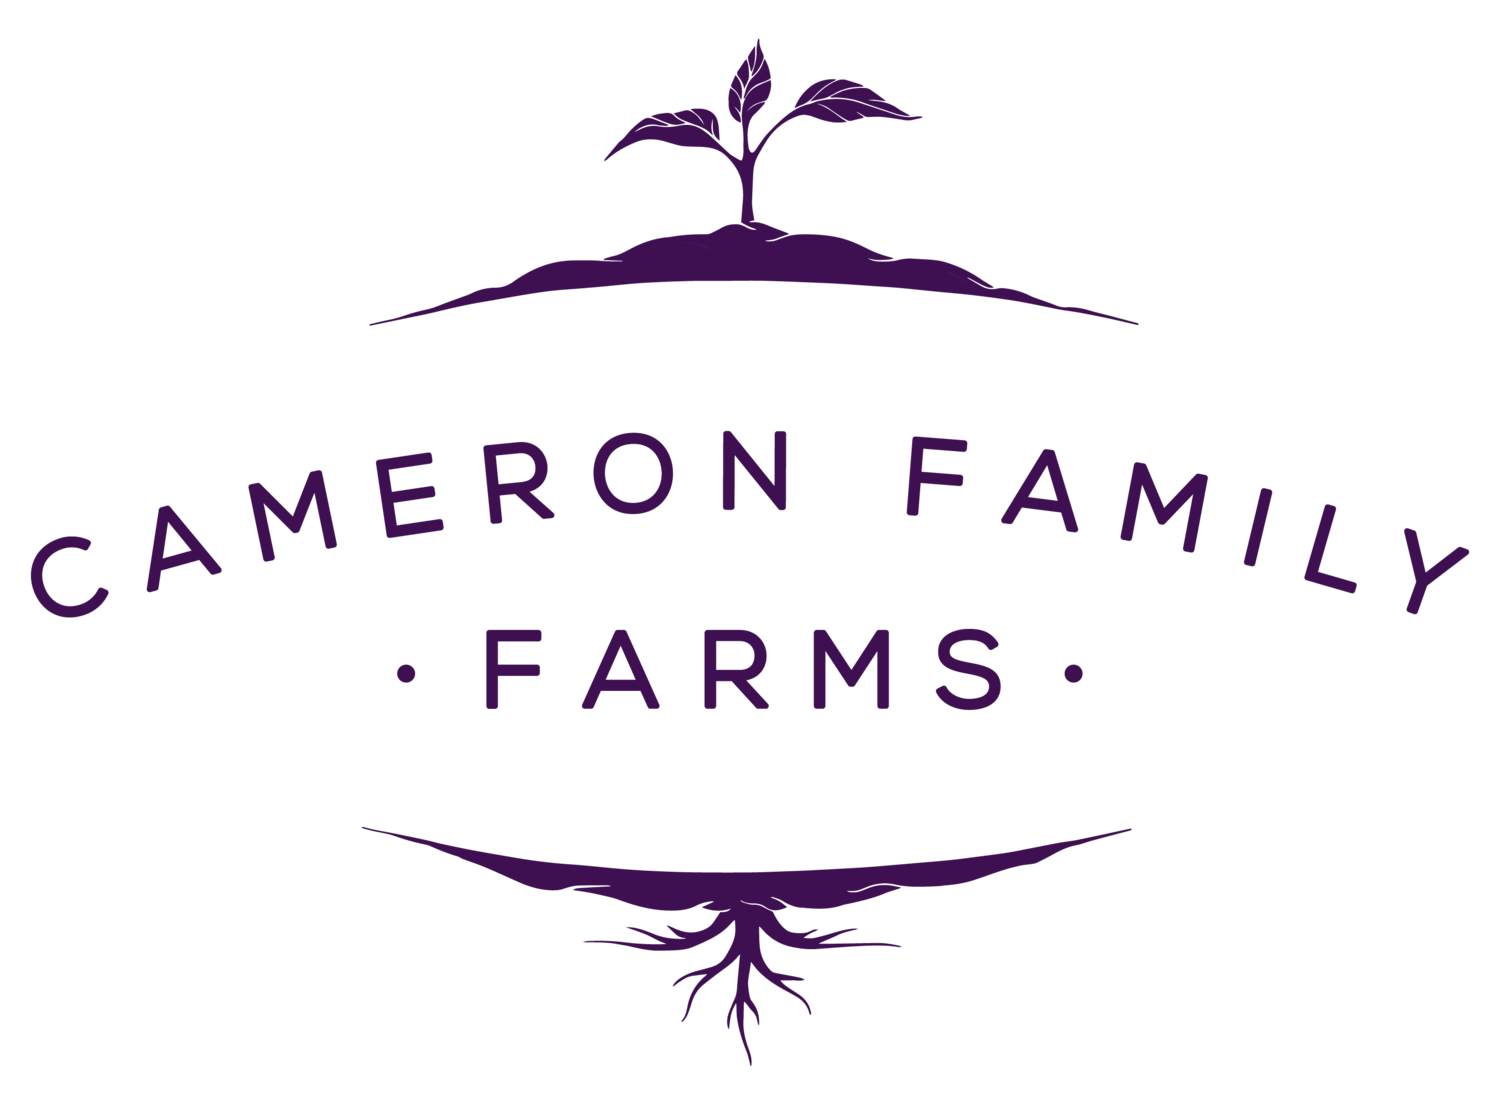 Cameron Family Farms